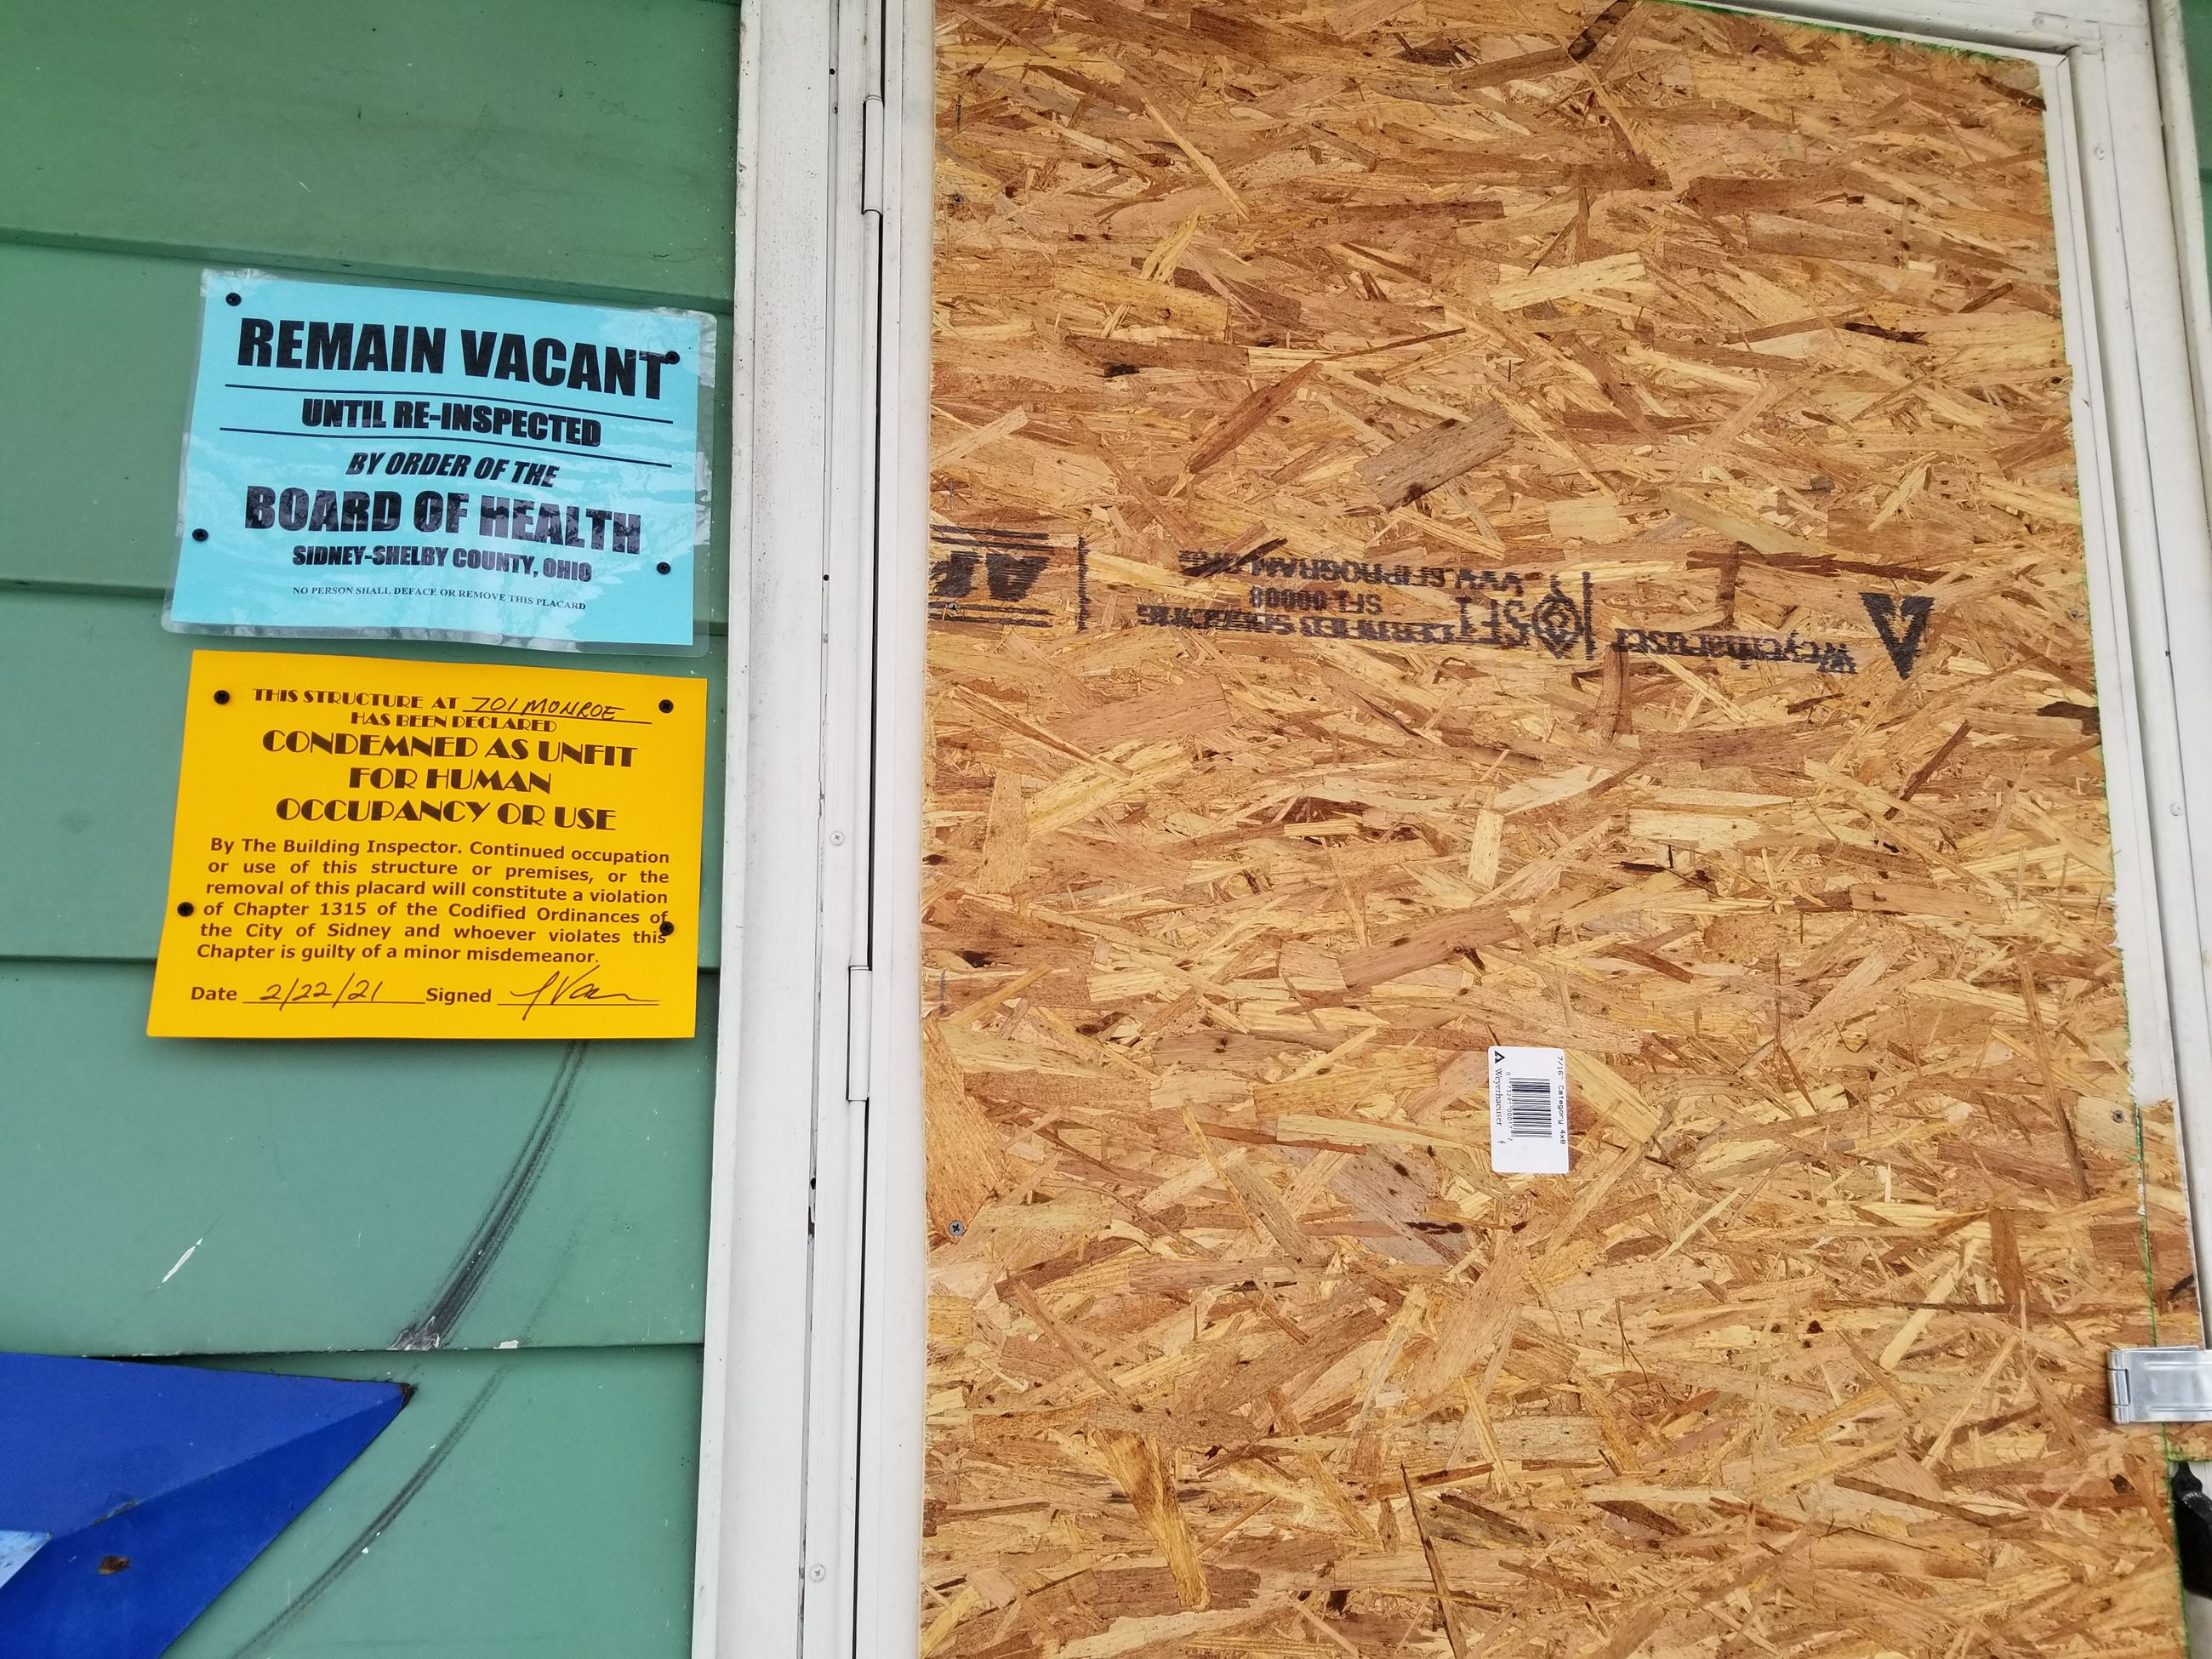 Remain Vacant and Condemned as Unfit for Human Occupancy or Use Placards at 701 Monroe Street, Sidne